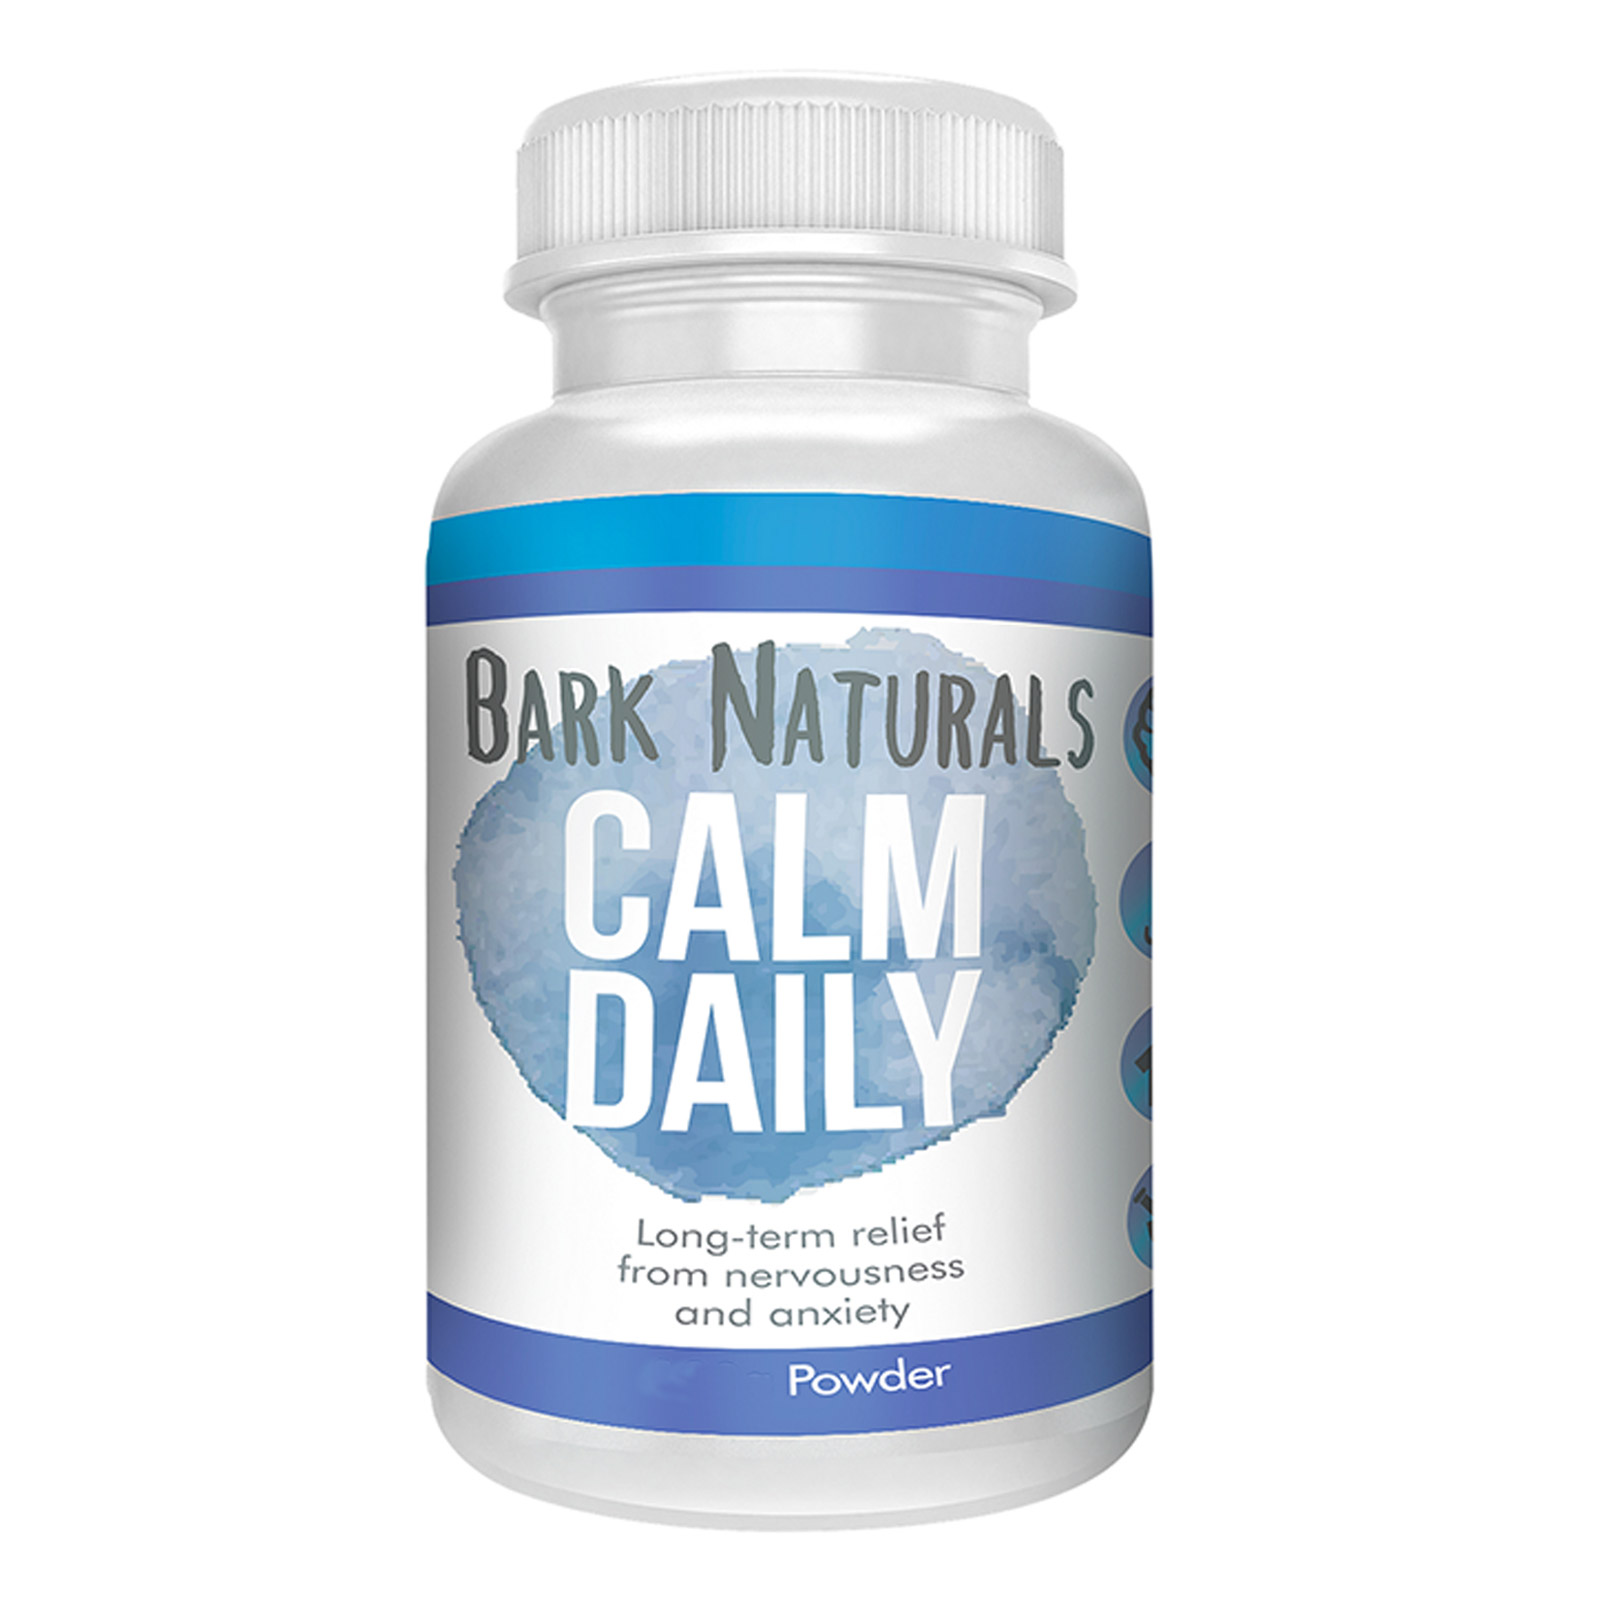 Bark Naturals Calm Daily Powder for Dogs - 100 gm